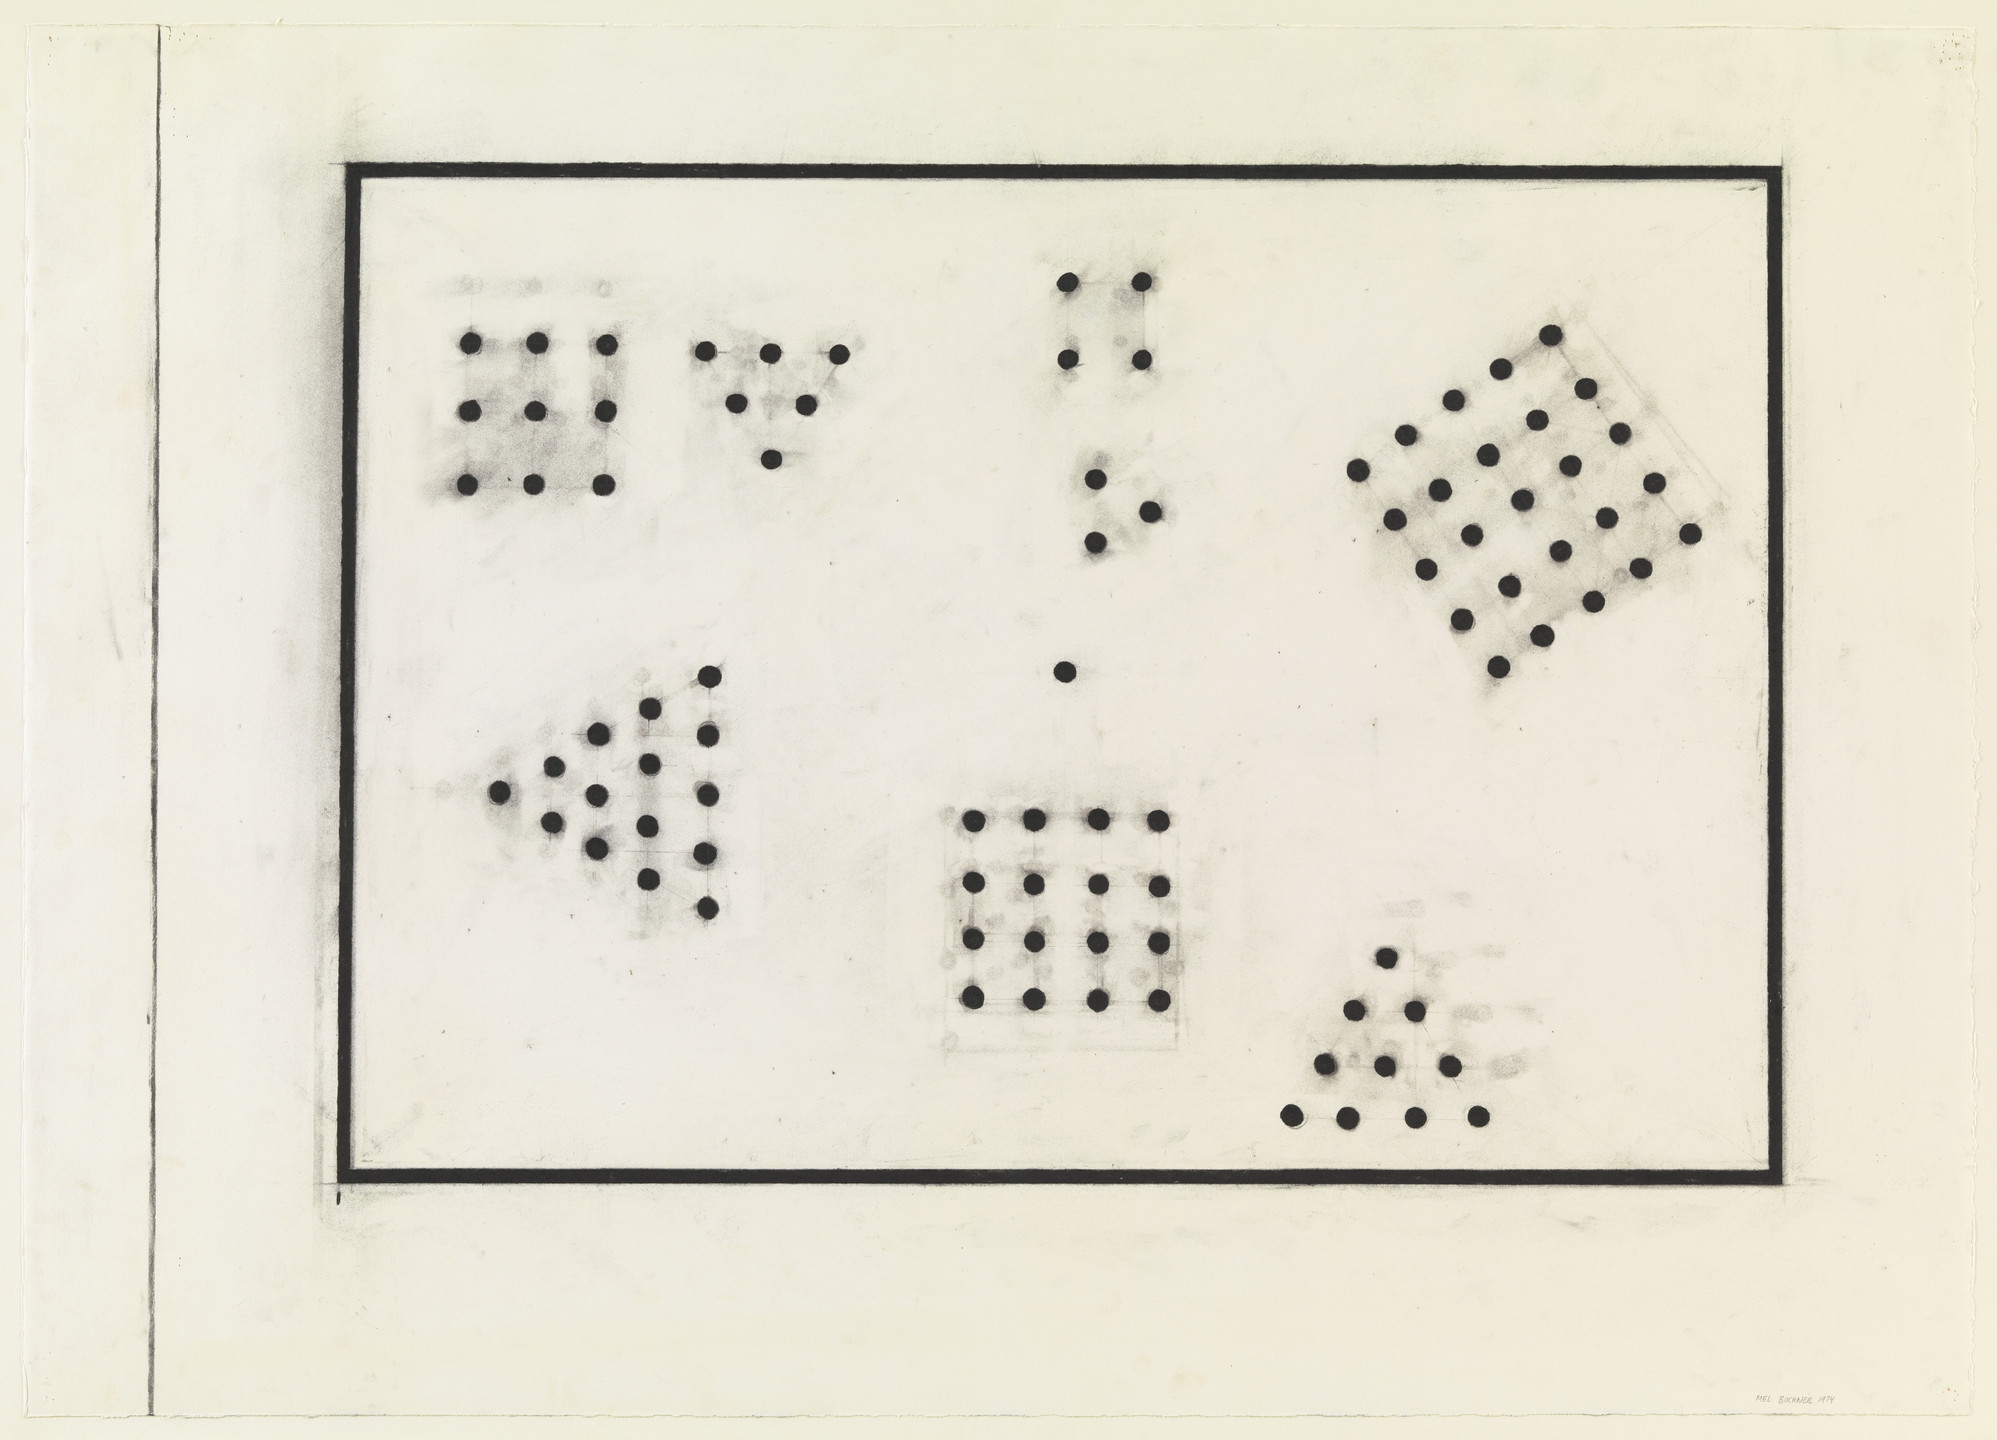 Mel Bochner. Triangle and Square: Points. 1974